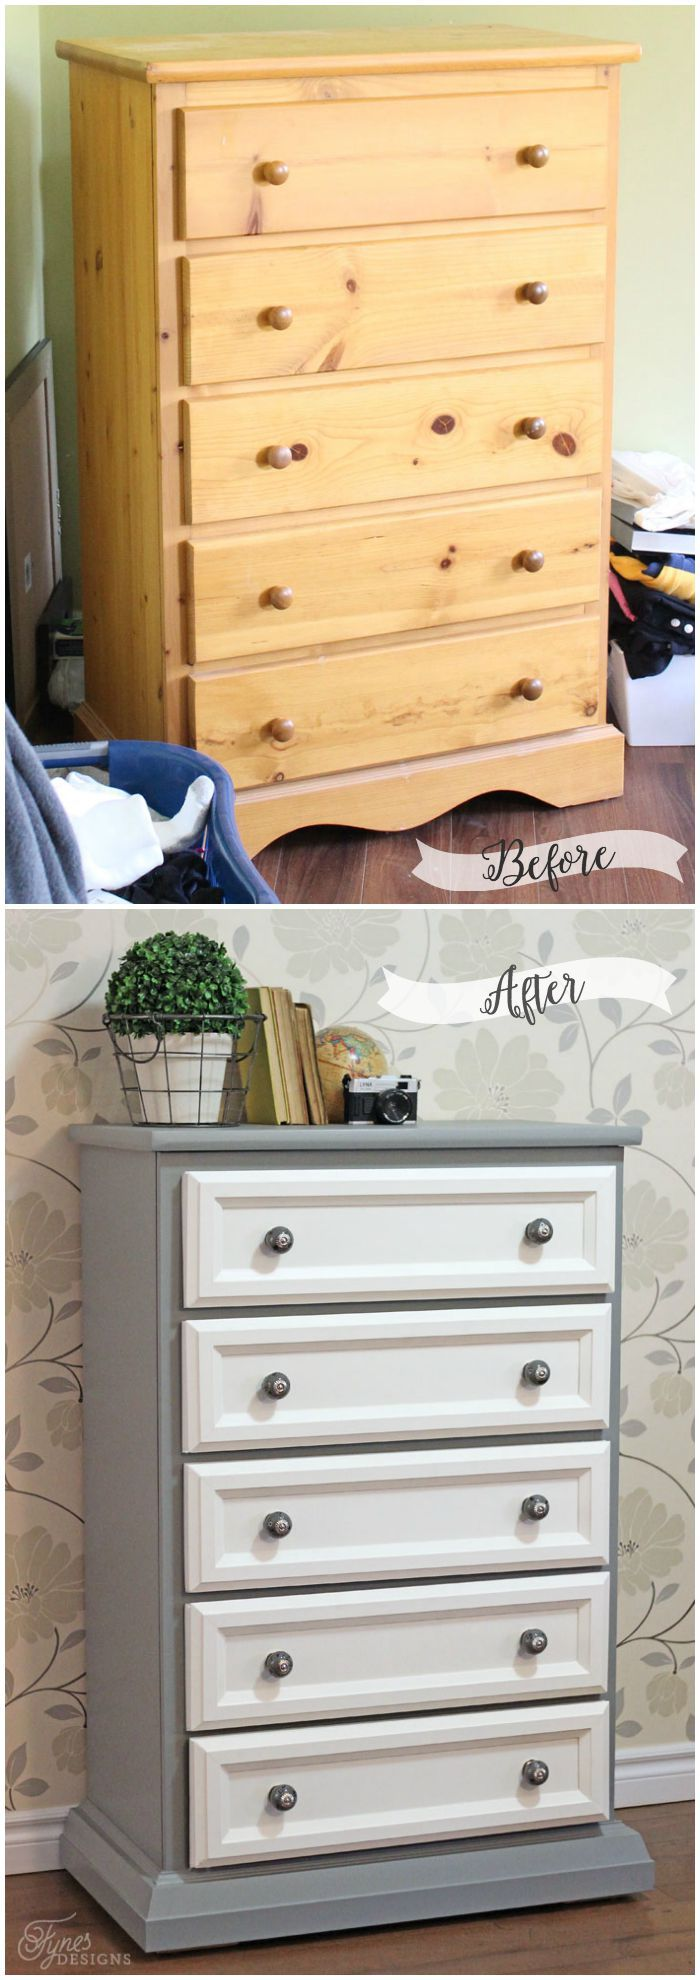 Before and After dresser makeover- trim work and paint go a long way to making a blod statement pieve